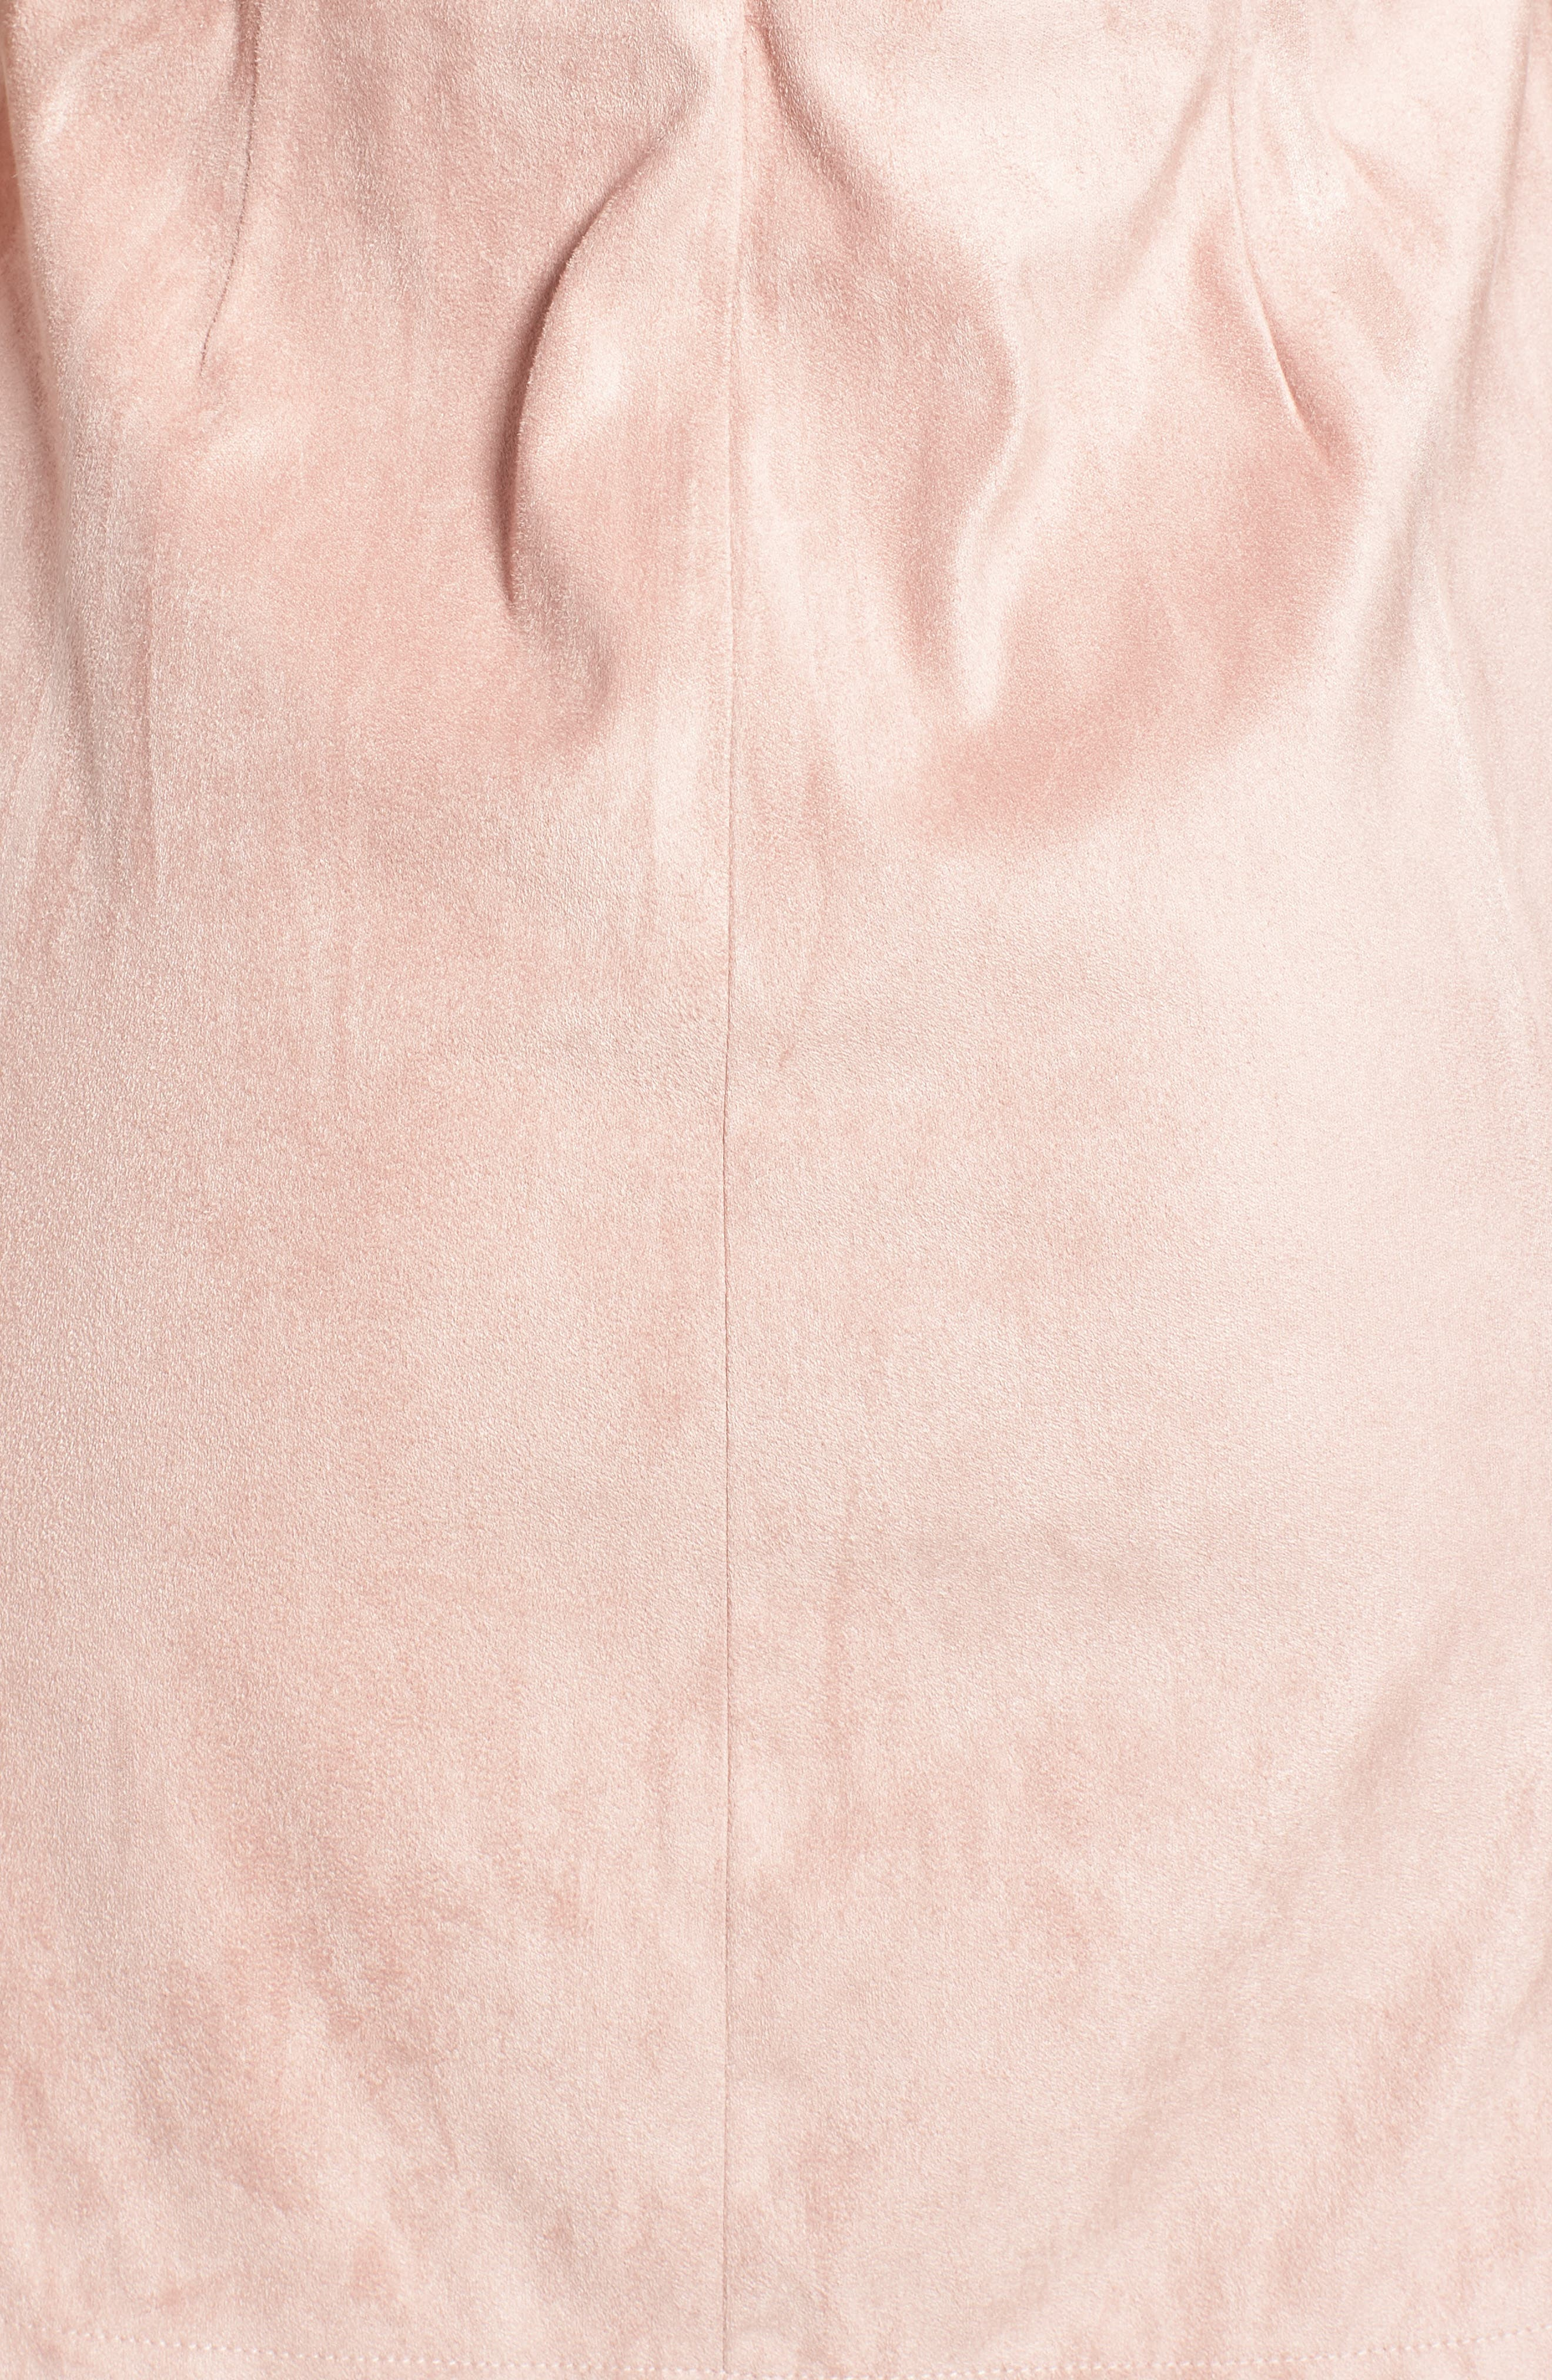 Daton Faux Suede Dress,                             Alternate thumbnail 6, color,                             Nude Pink